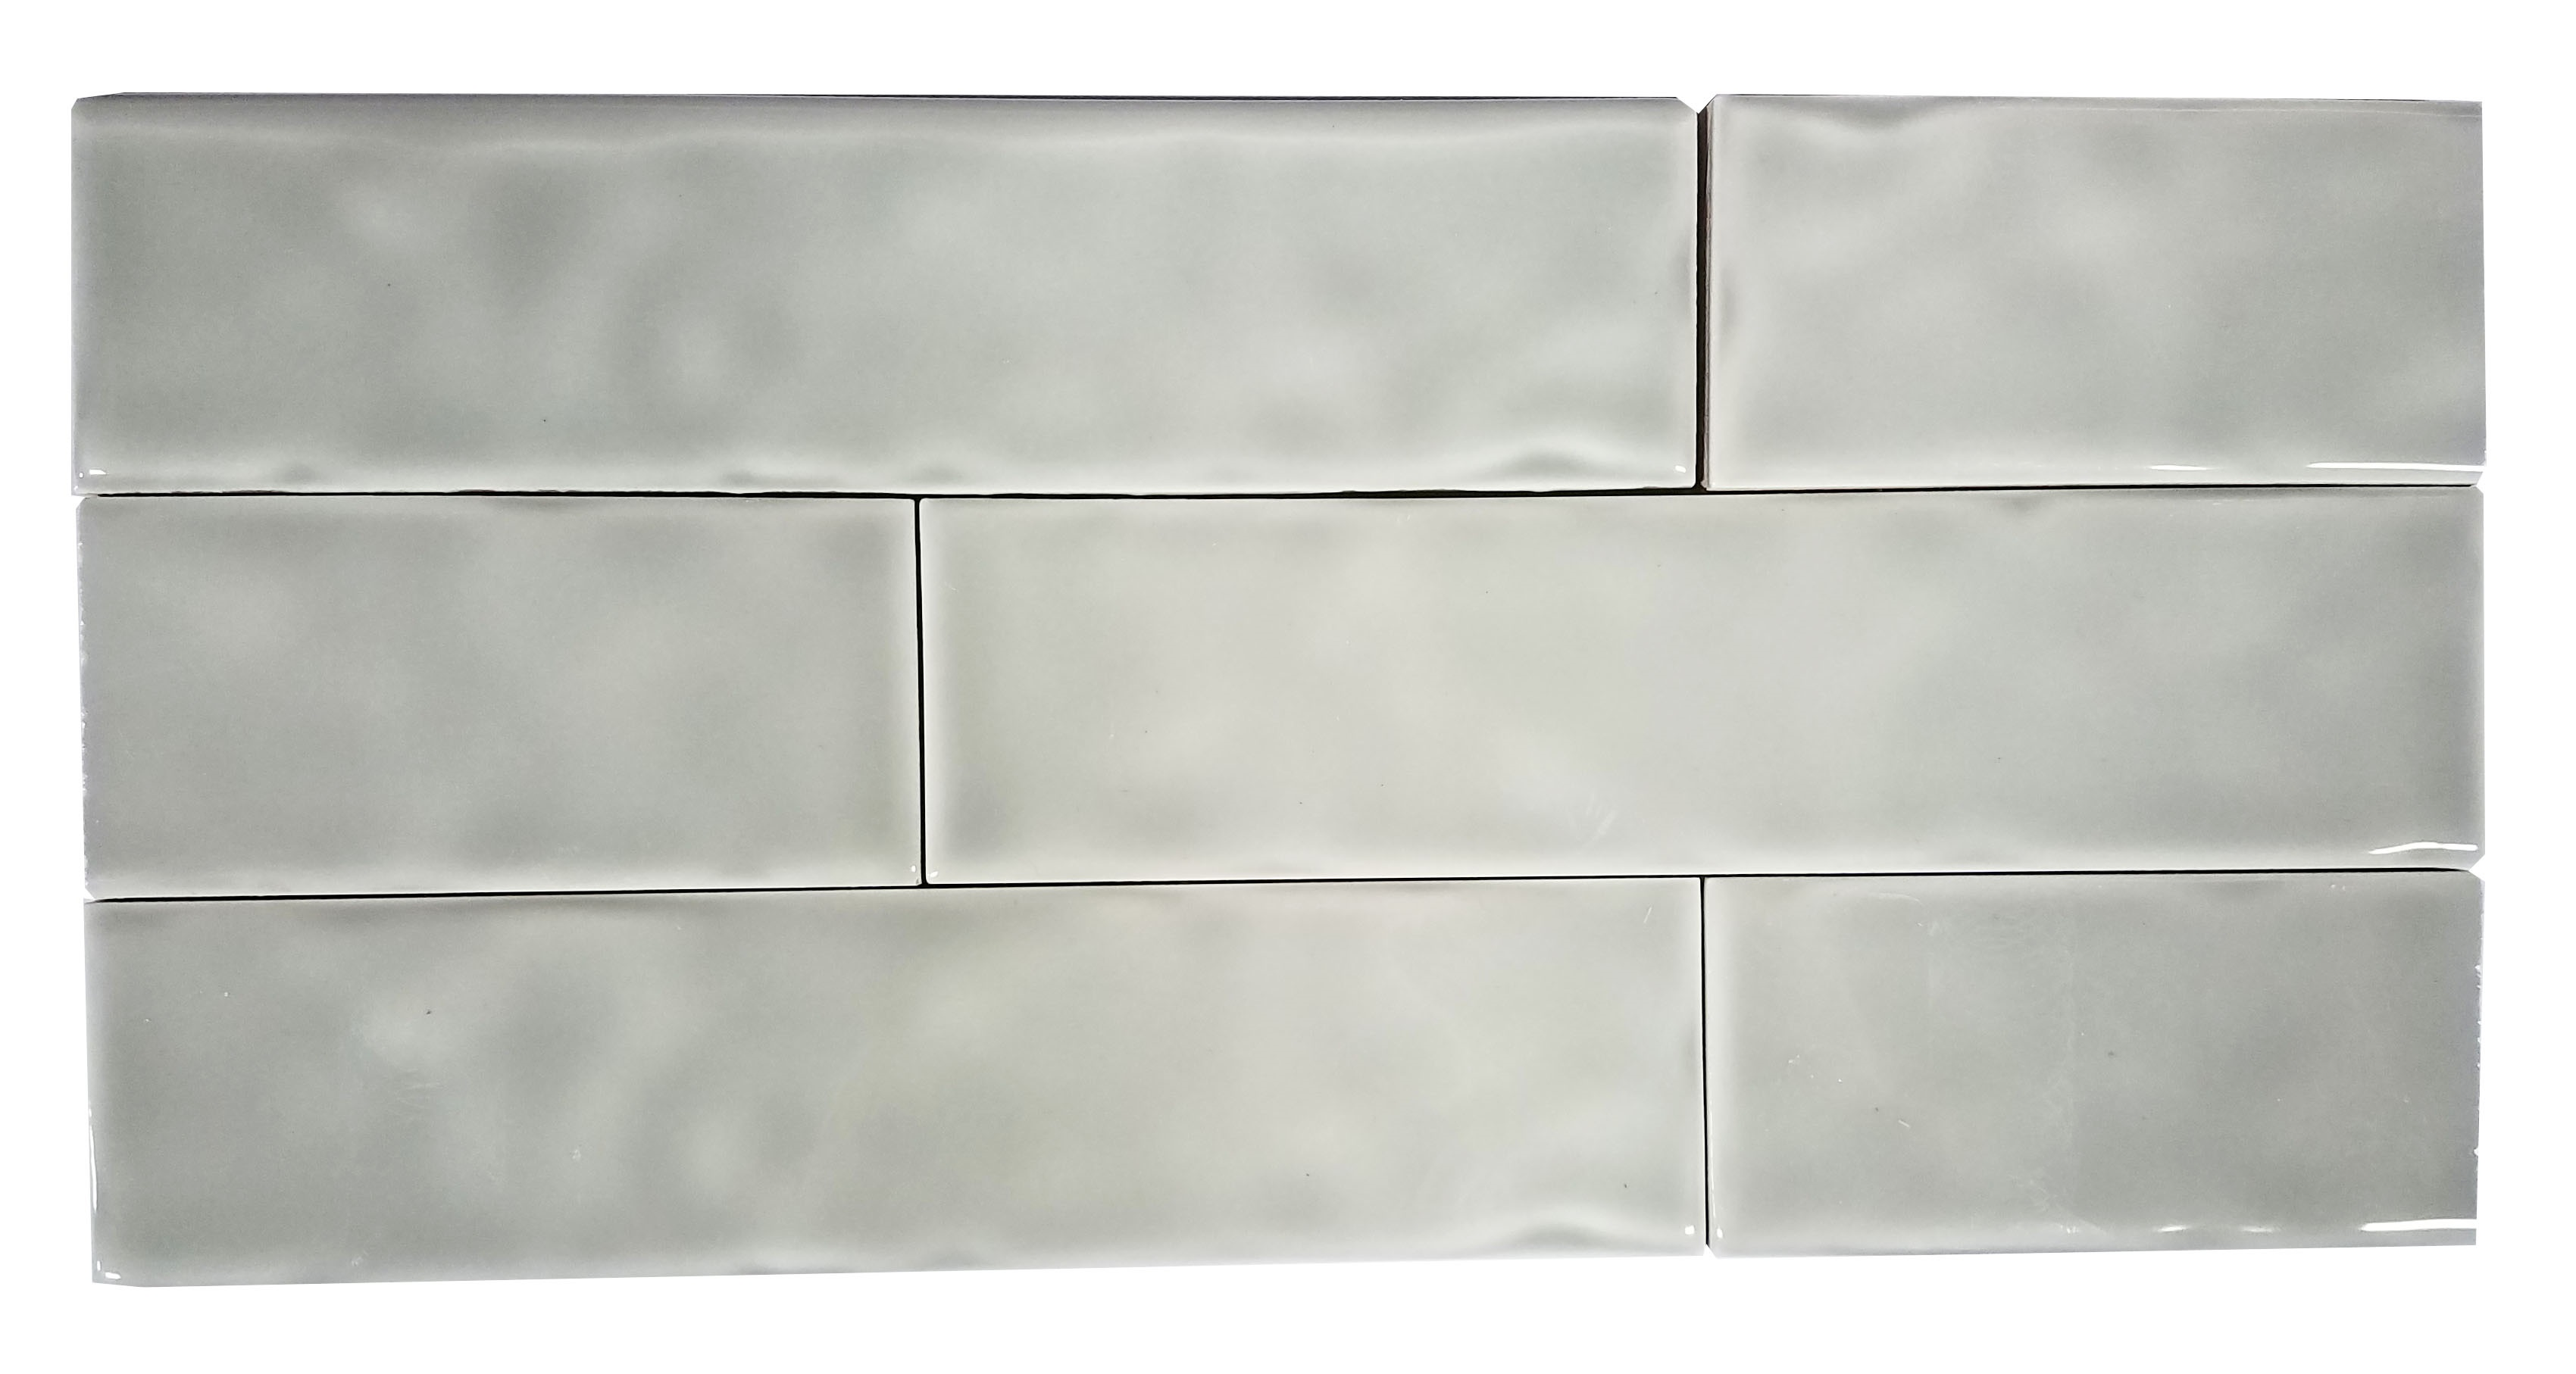 2 x 8 Chelsea Cement Ceramic Wall subway